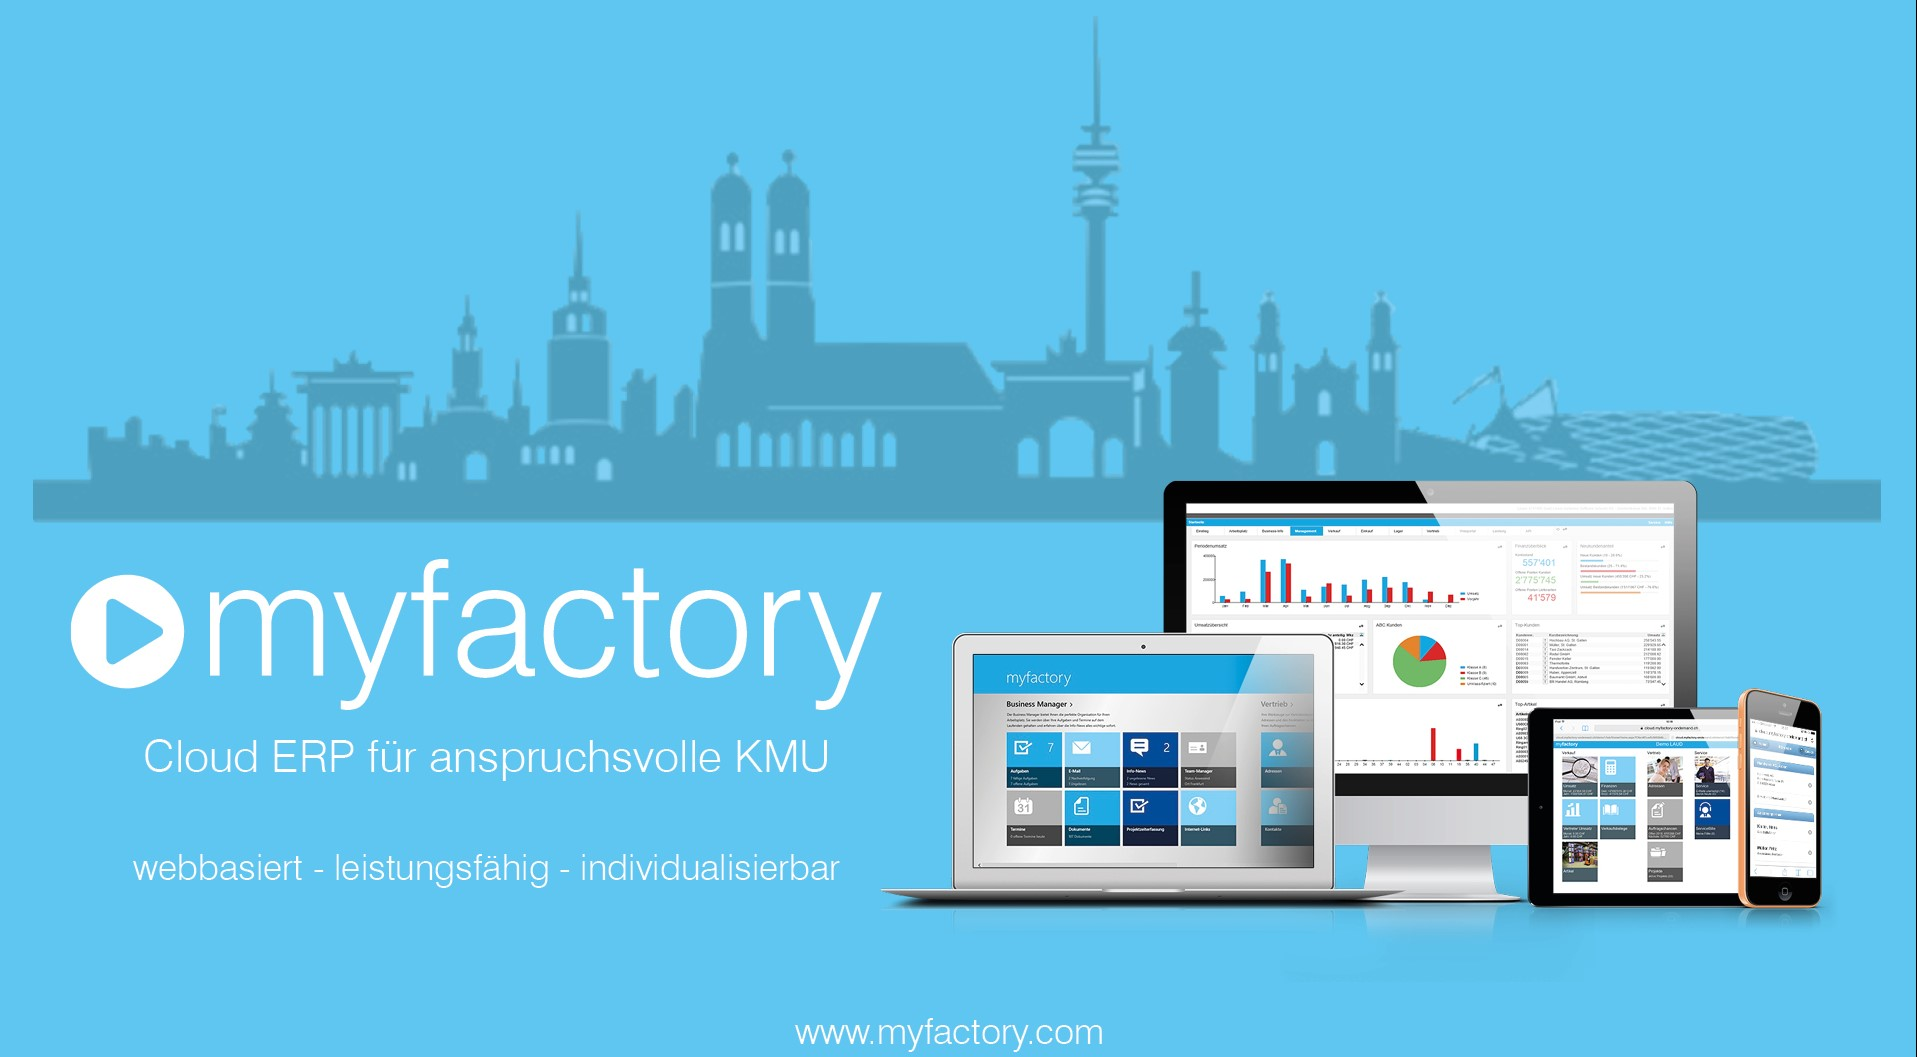 myfactory-wallpaper.jpg